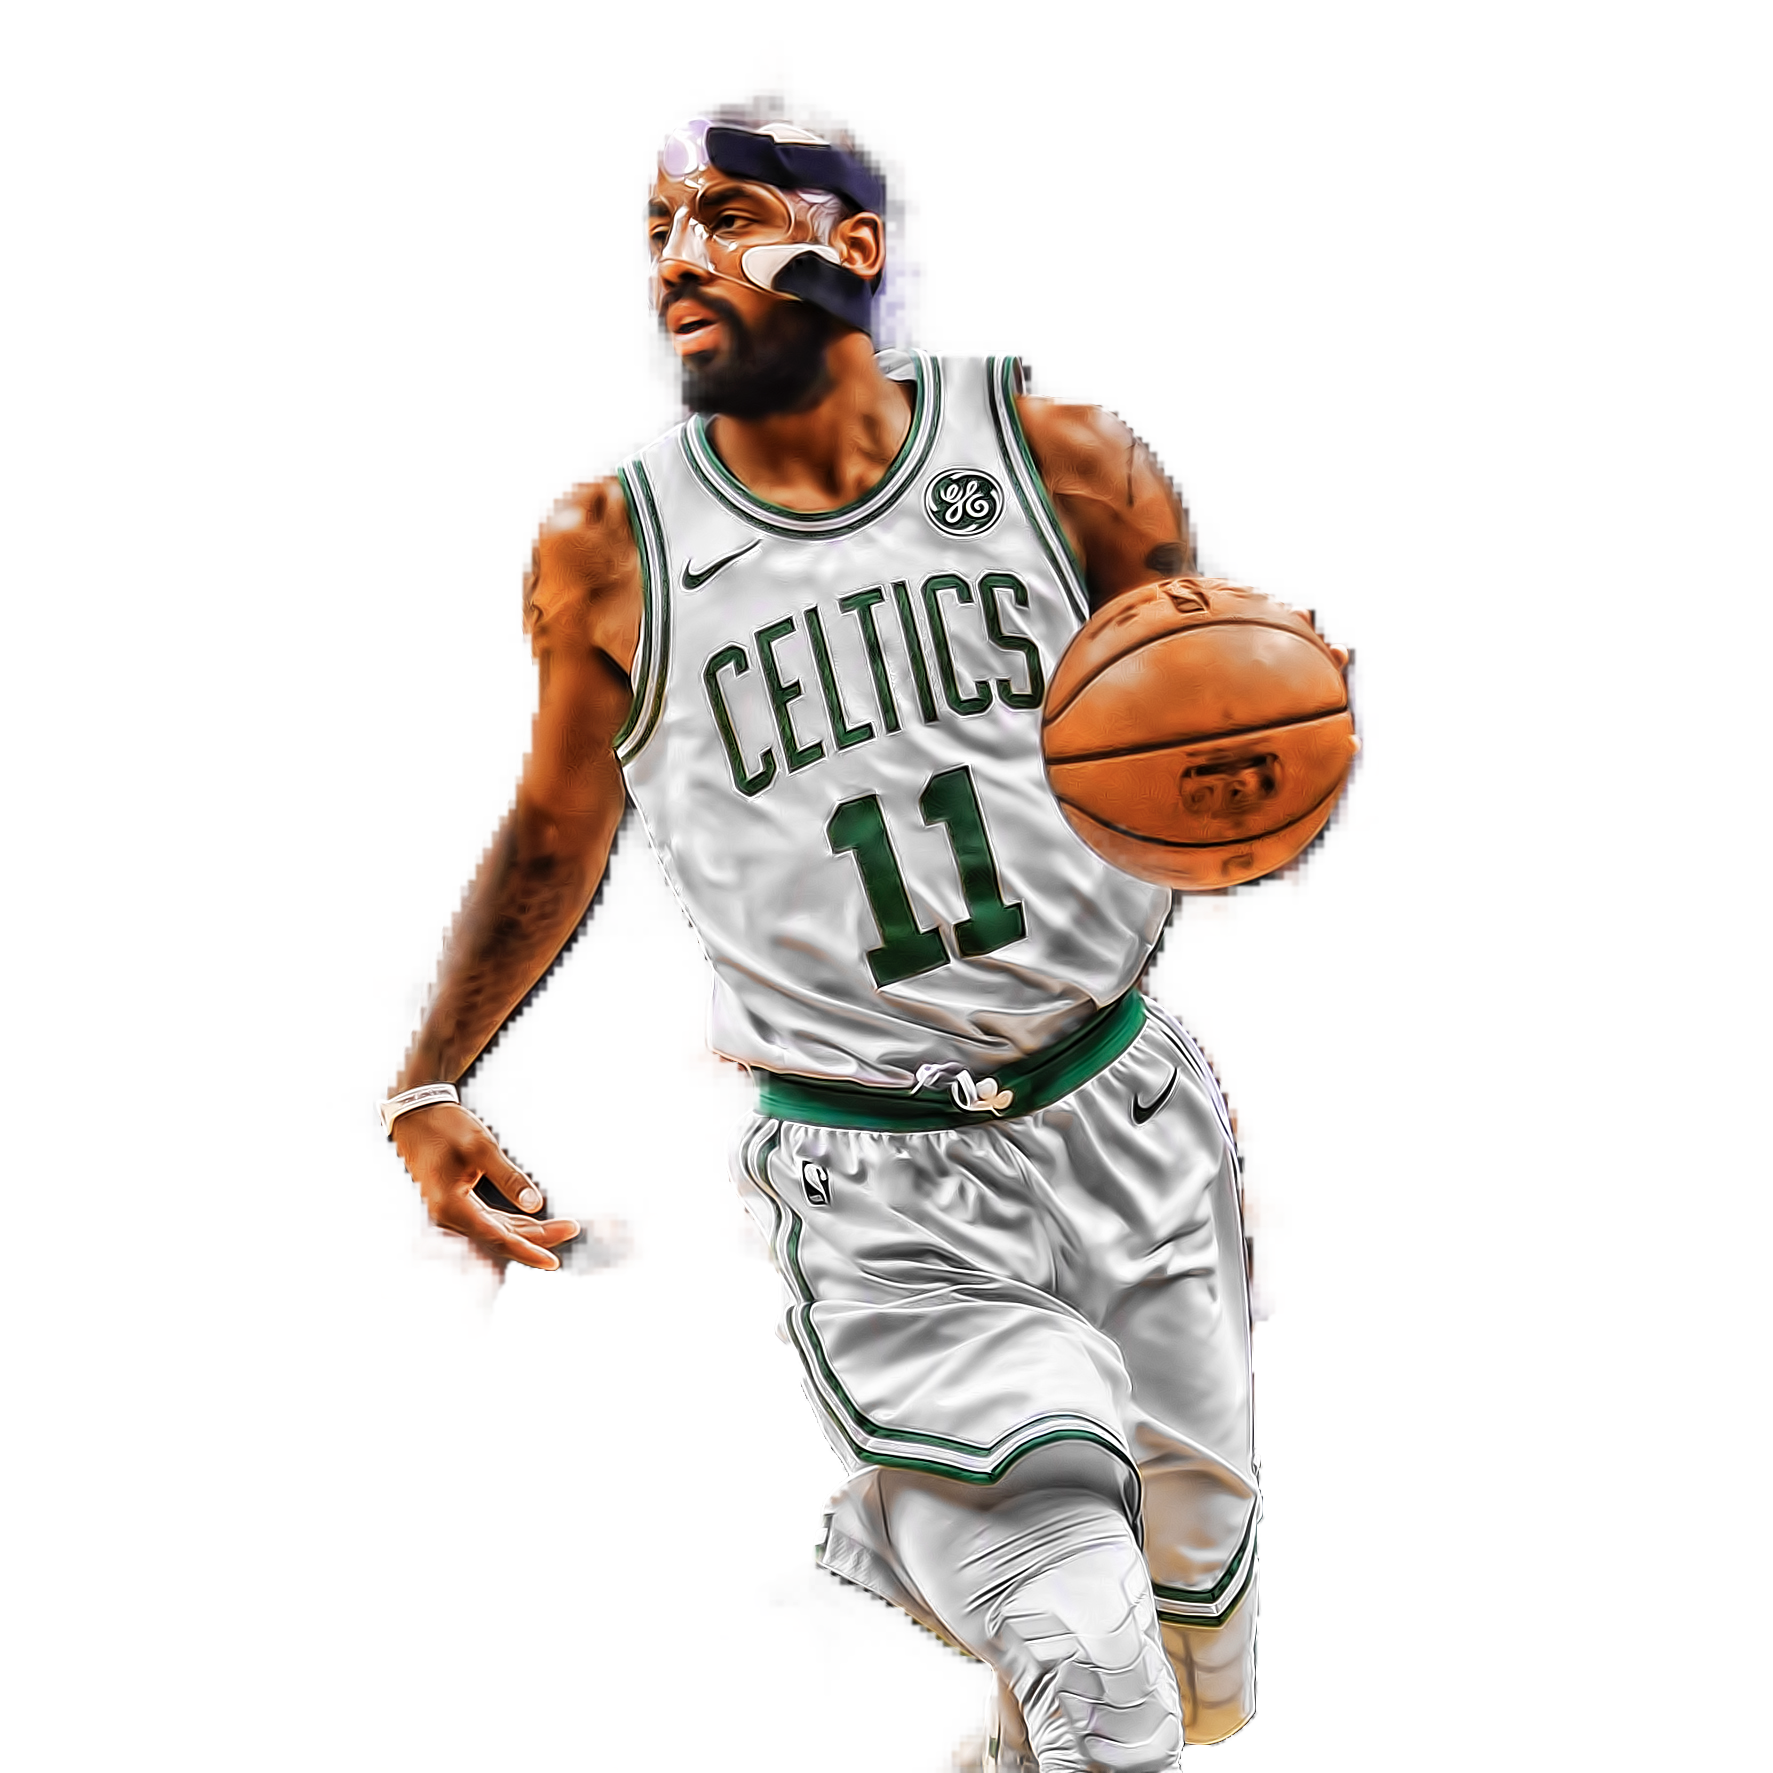 kyrie png kyrie irving nba basketballfreetoedit baseball player clipart images free basketball players clip art free